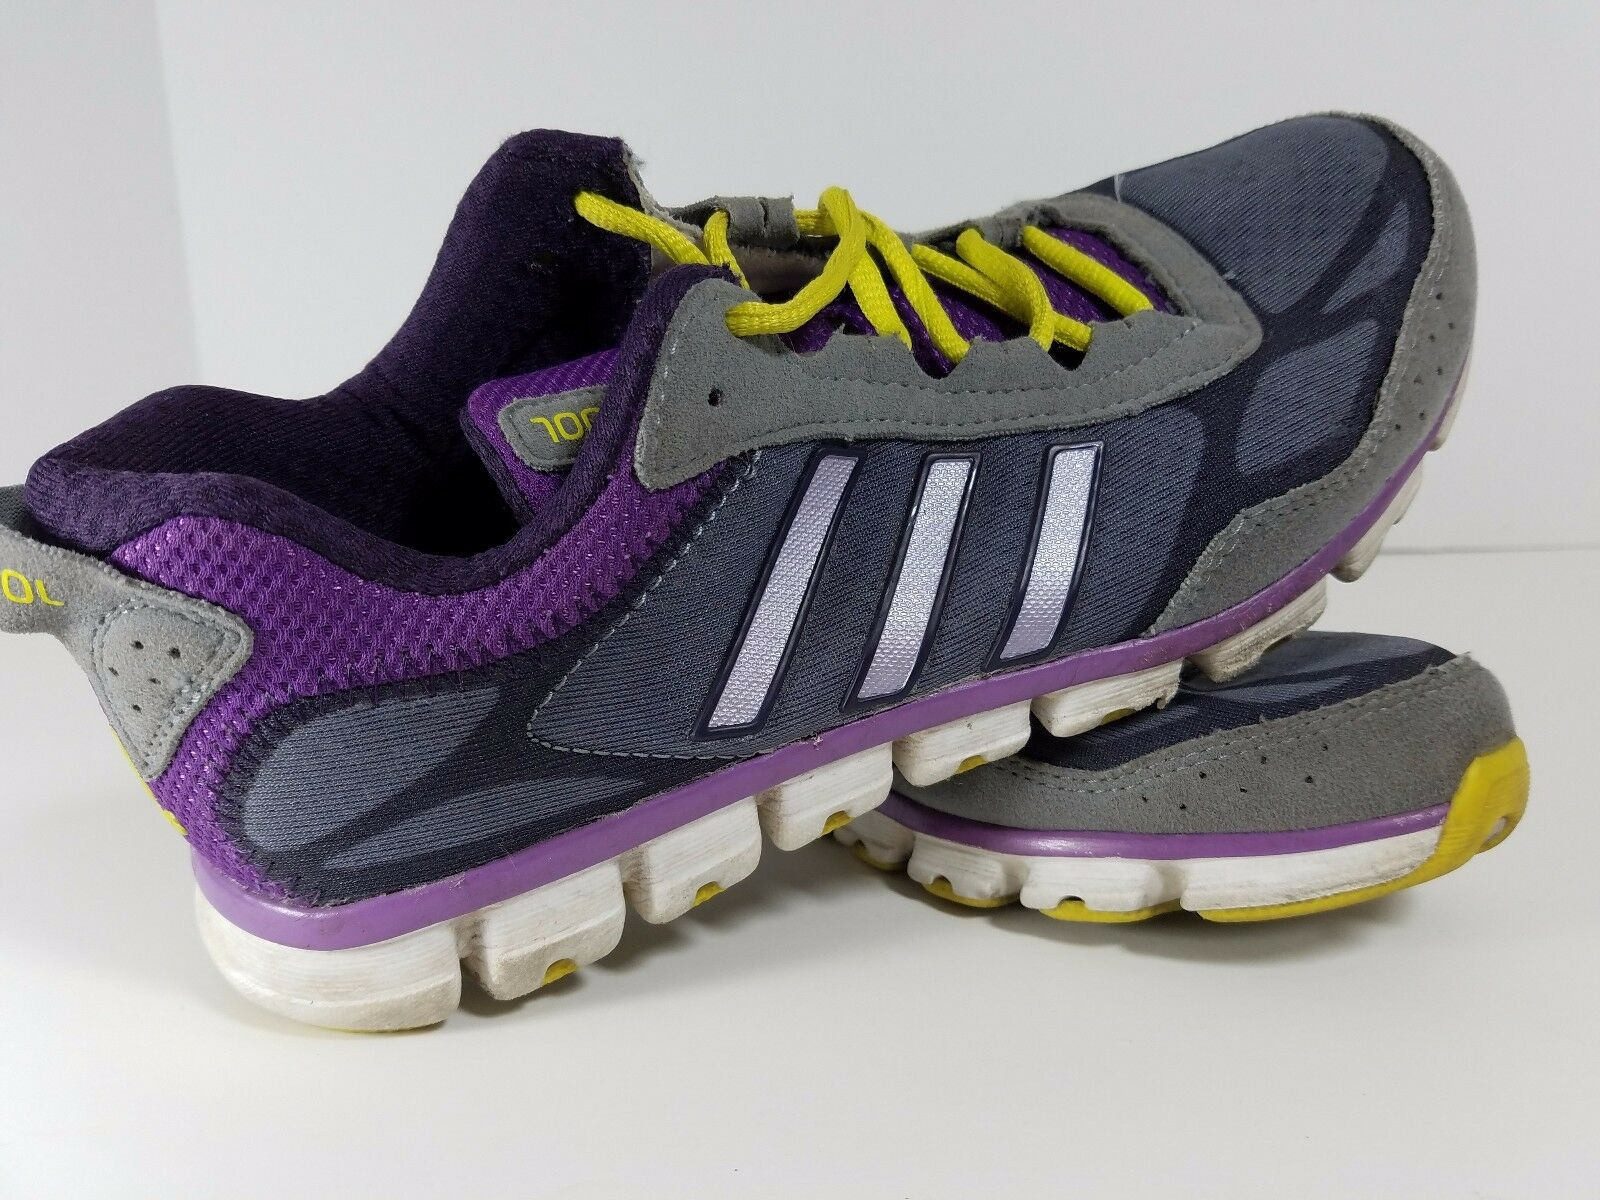 Adidas ClimaCool Sneakers US Sz 6.5 Purple+ Yellow Athletic Running Walking